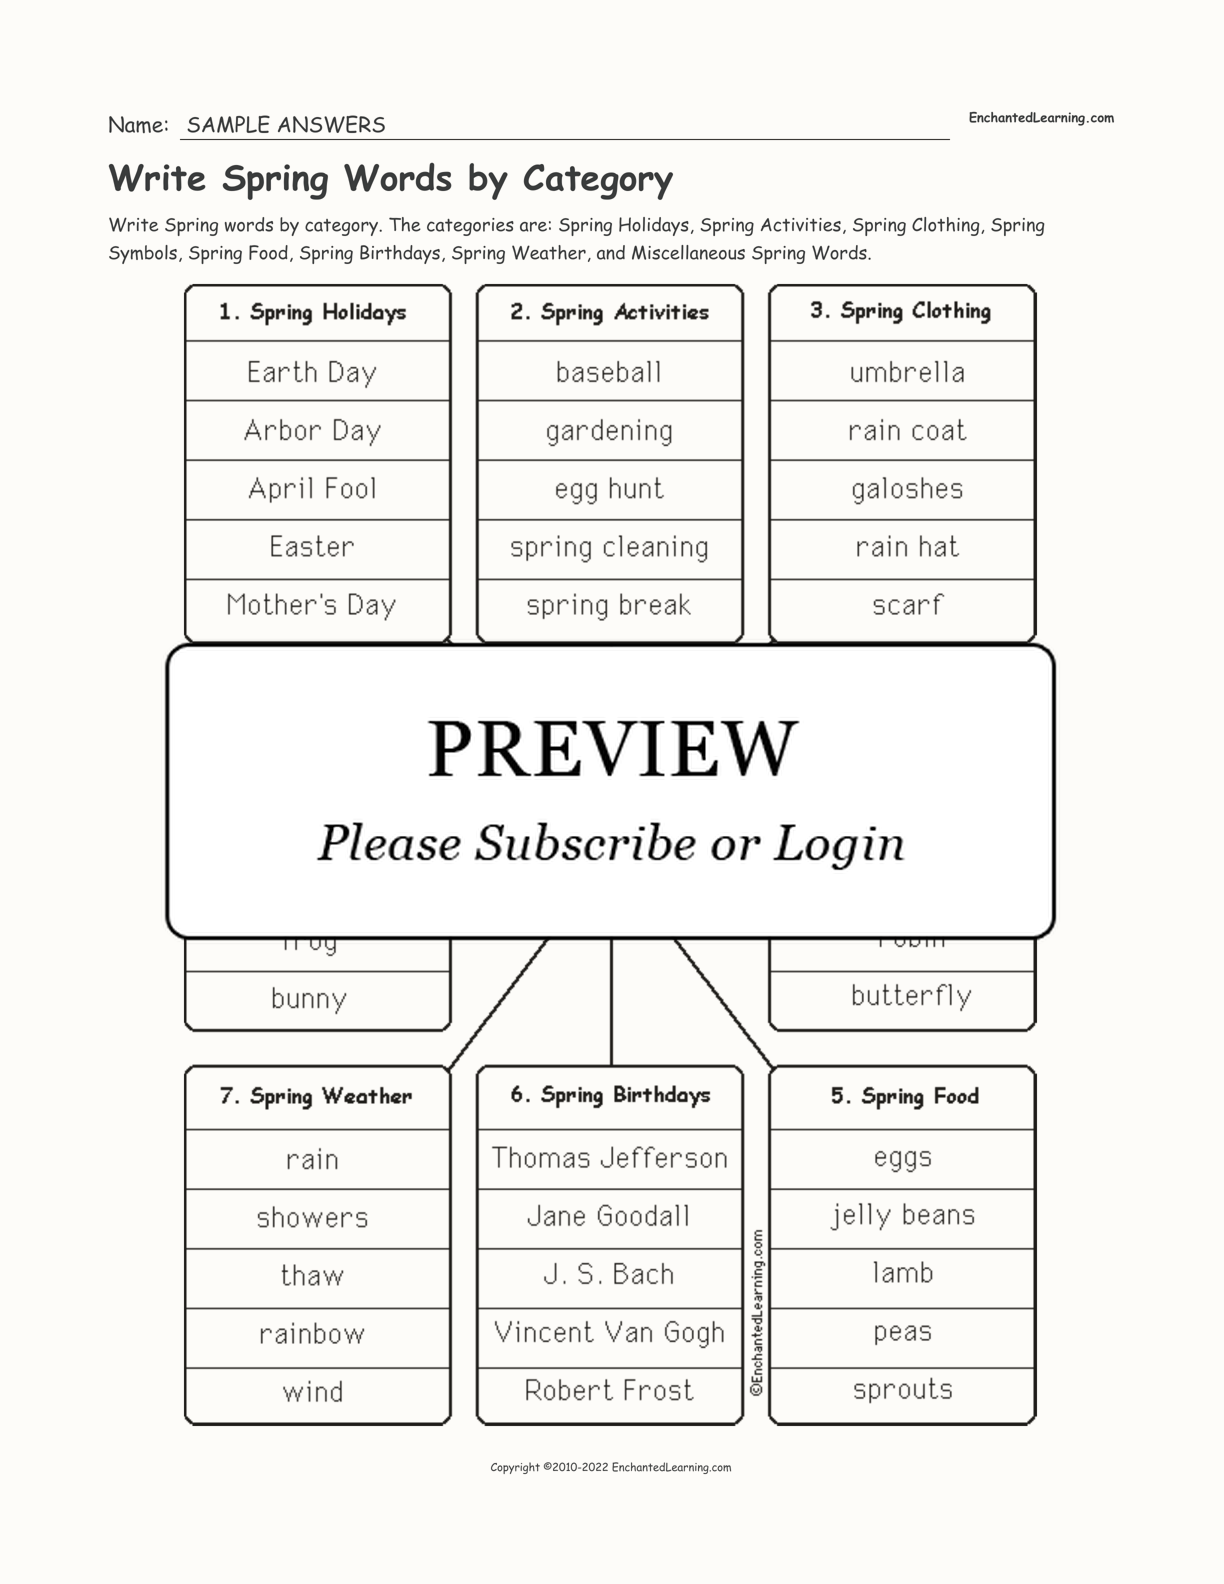 Write Spring Words by Category interactive worksheet page 2